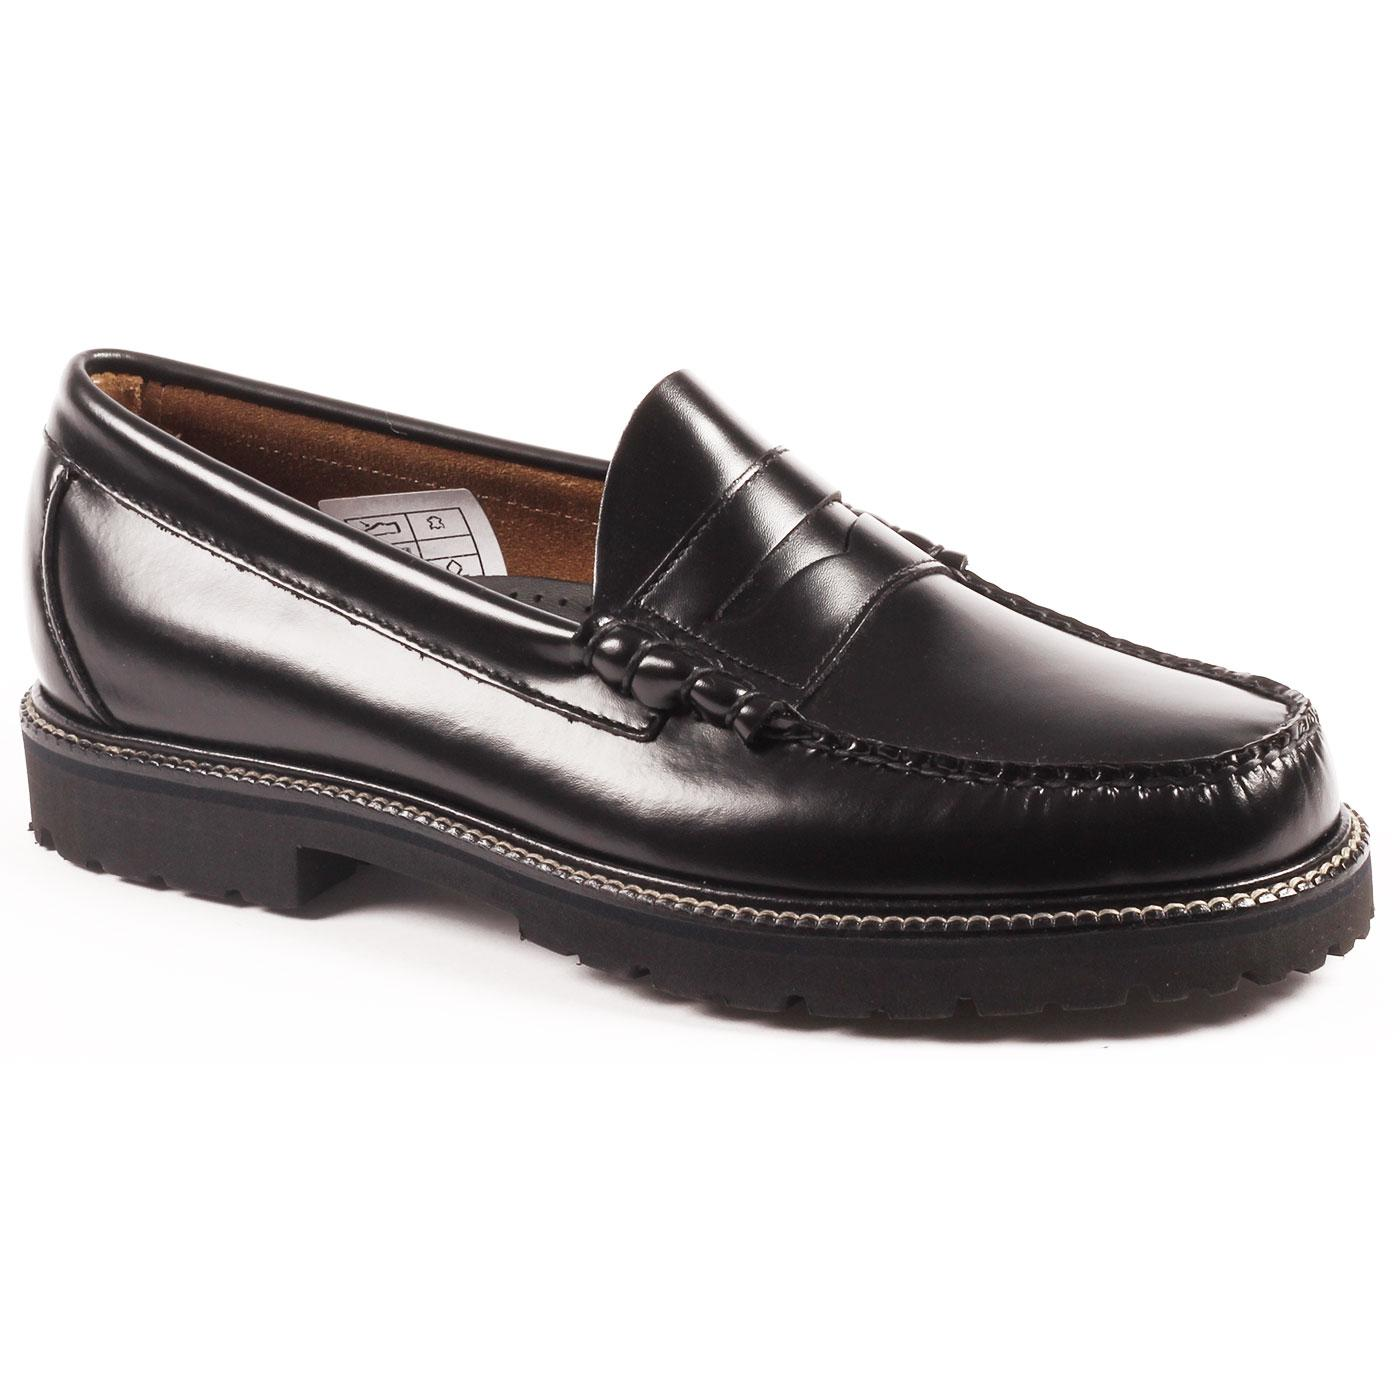 Larson Weejun 90 BASS WEEJUNS Mod Penny Loafers B